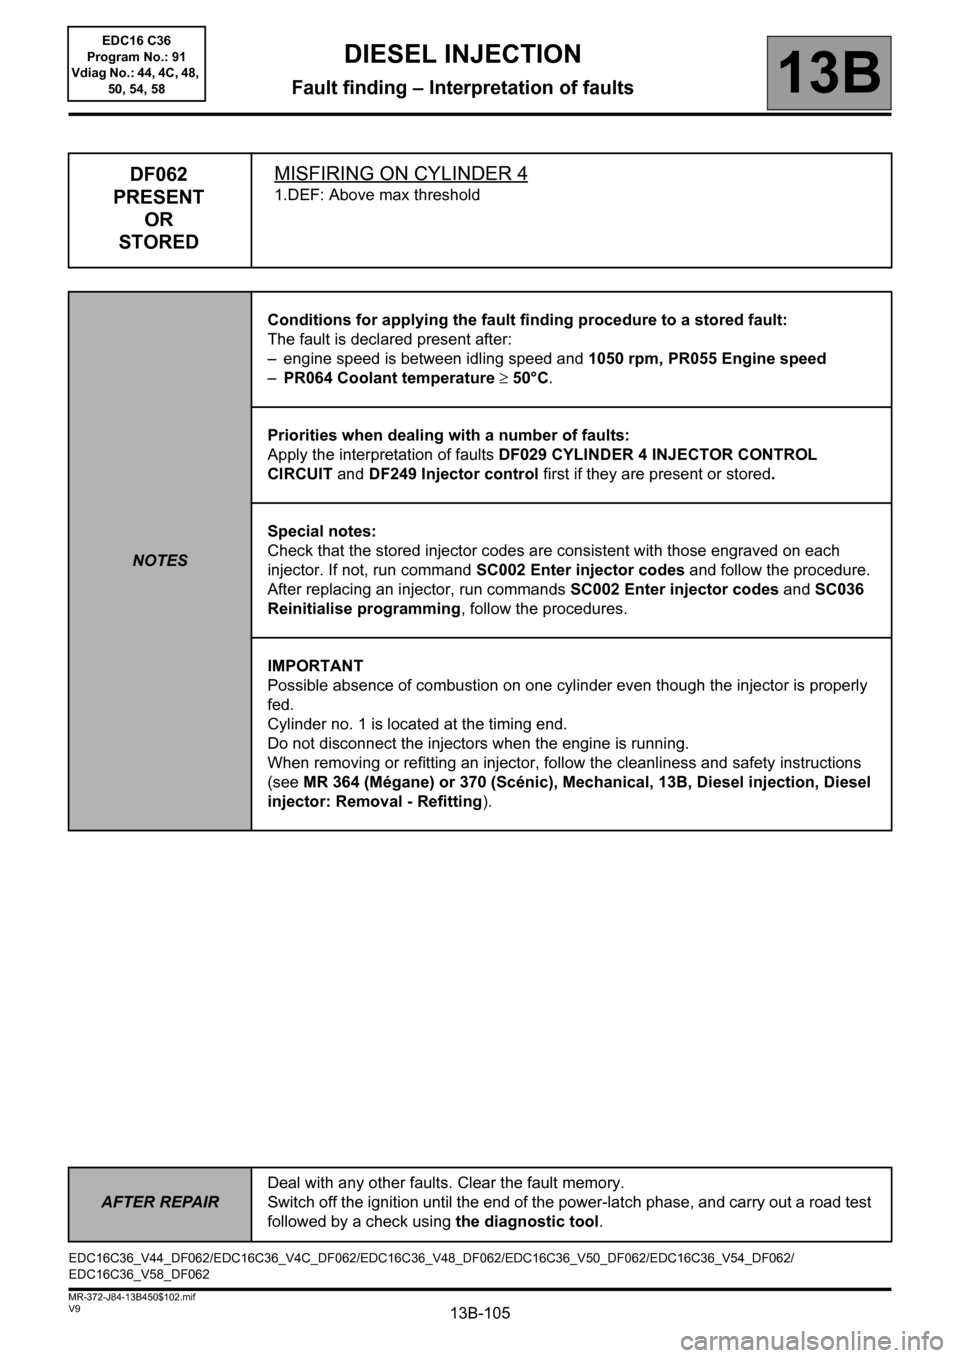 RENAULT SCENIC 2011 J95 / 3.G Engine And Peripherals EDC16C36 Workshop Manual, Page 105